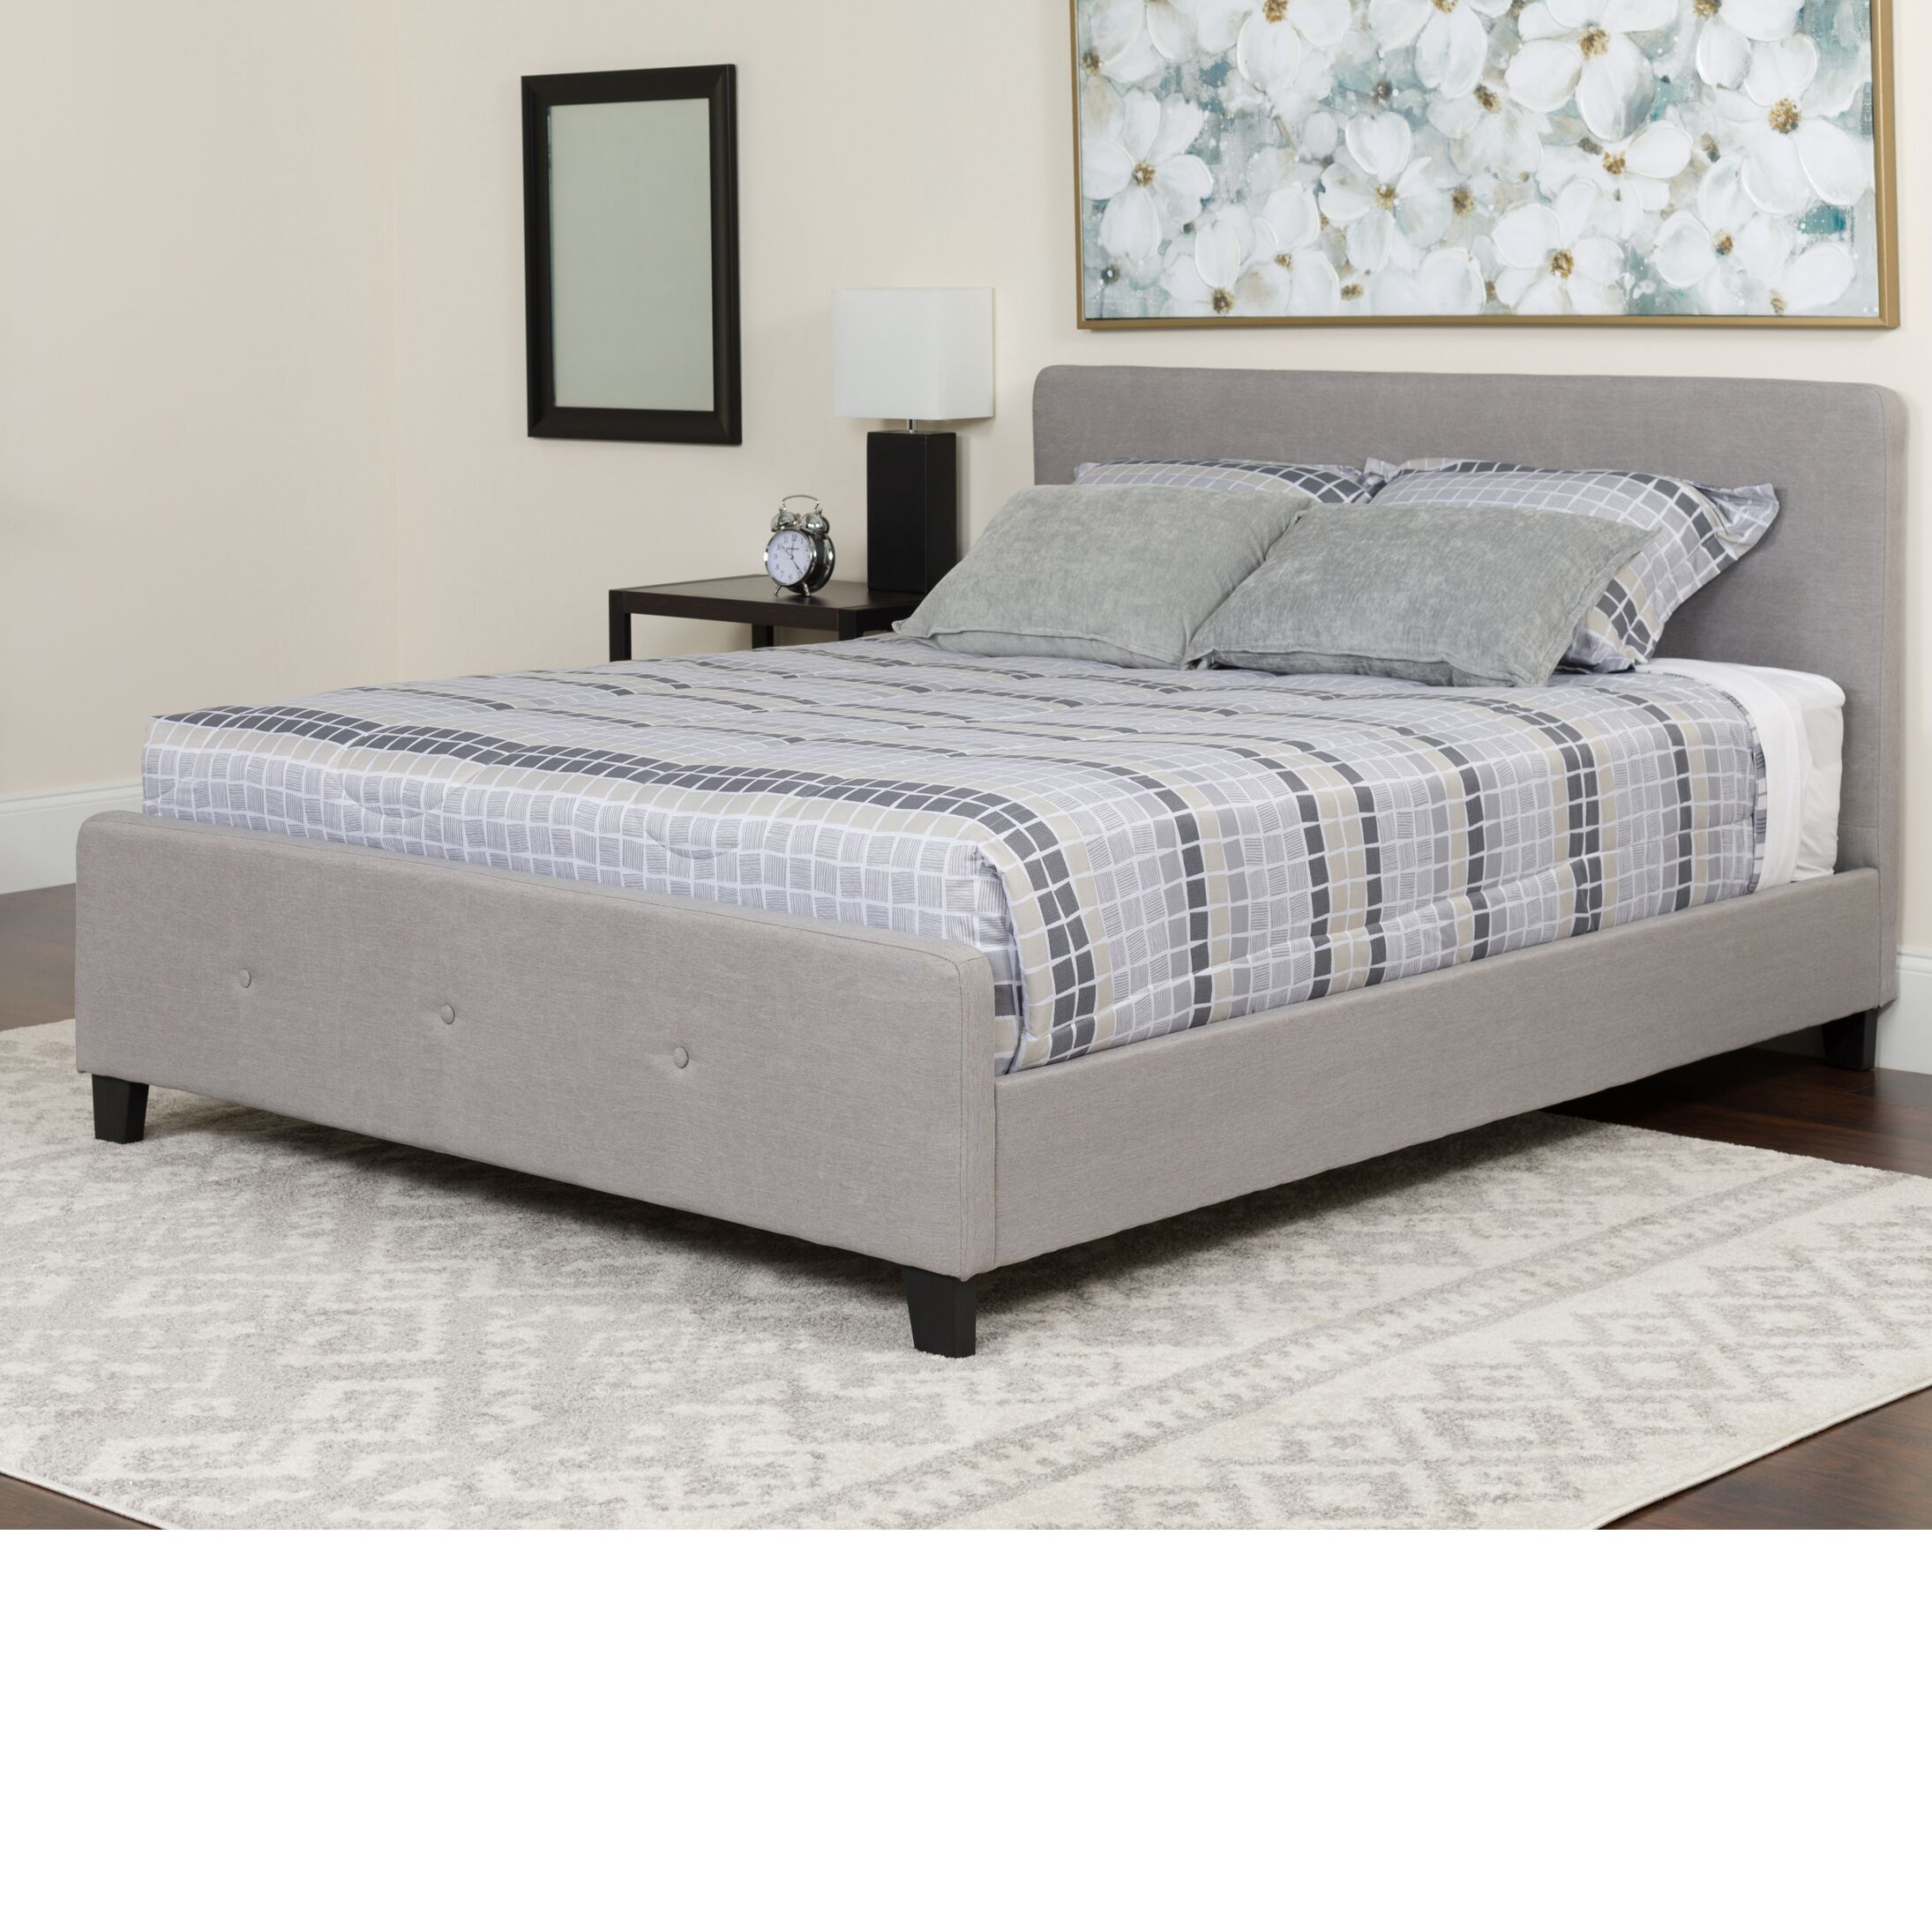 Konen Tufted Upholstered Platform Bed With Mattress Color: Light Gray, Size: Queen